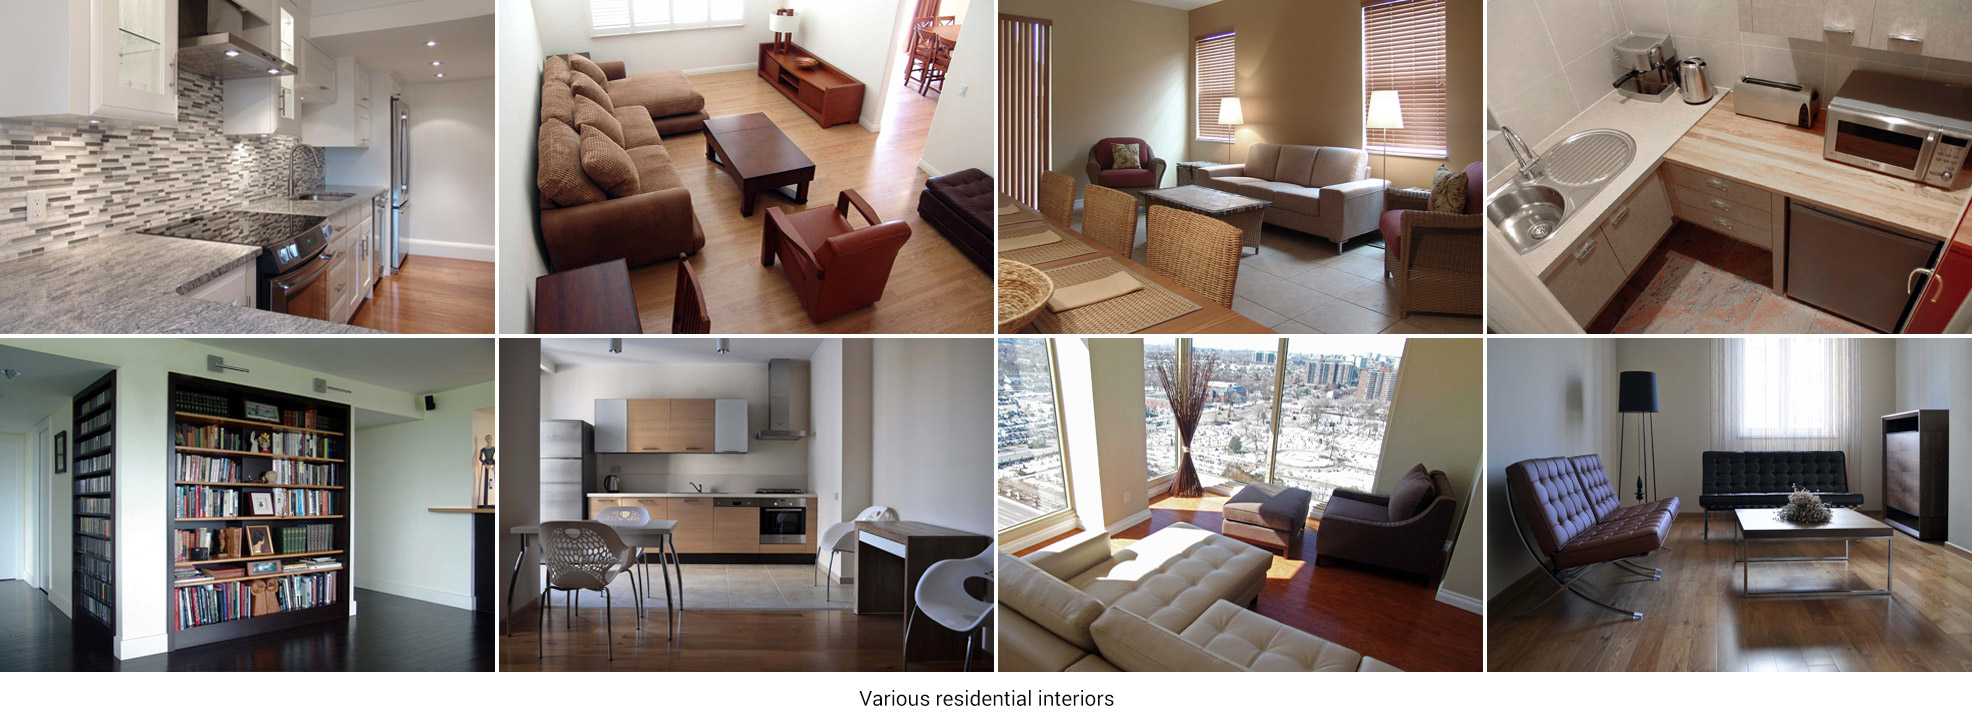 Various residential interiors